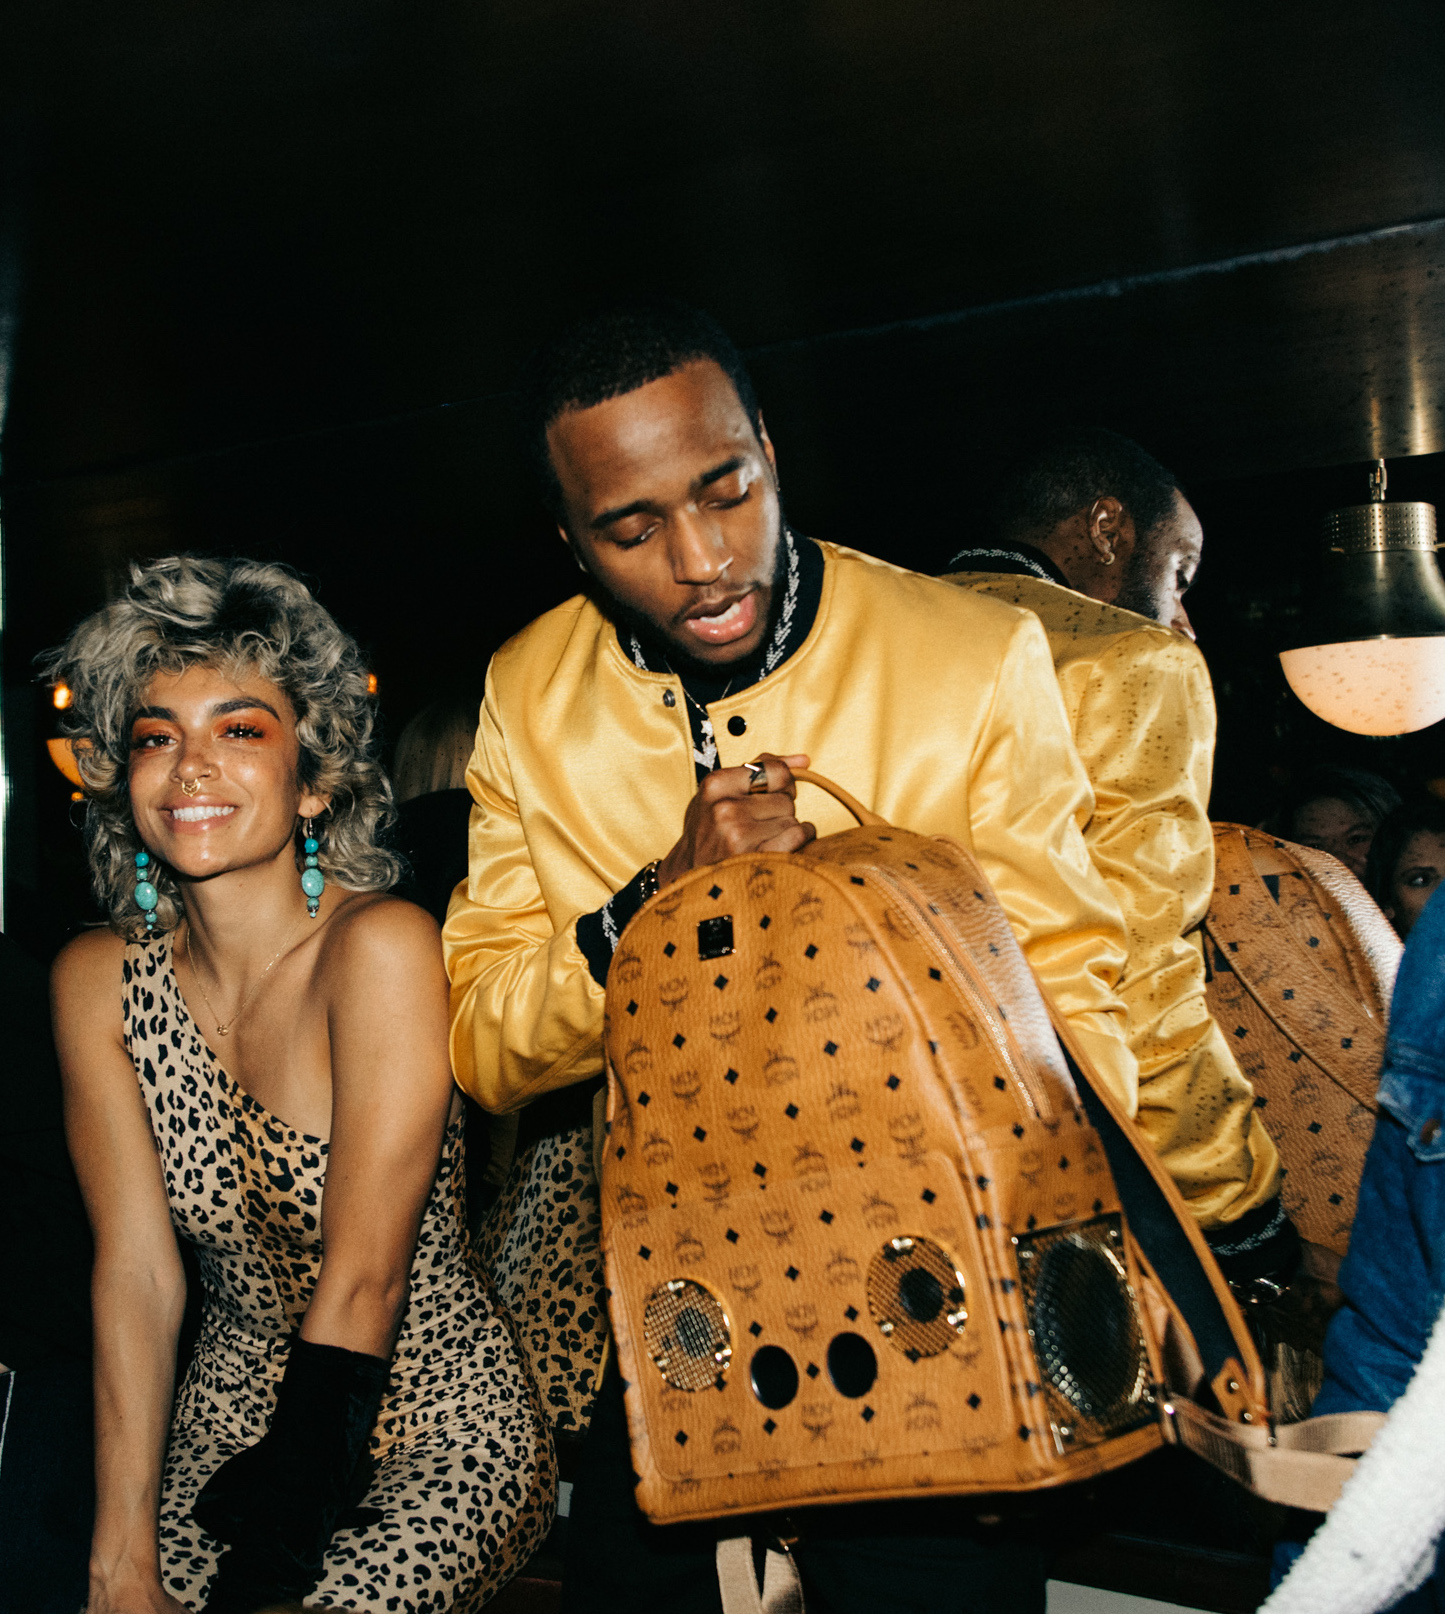 6LACK_pre-Grammy party_FINAL.jpeg